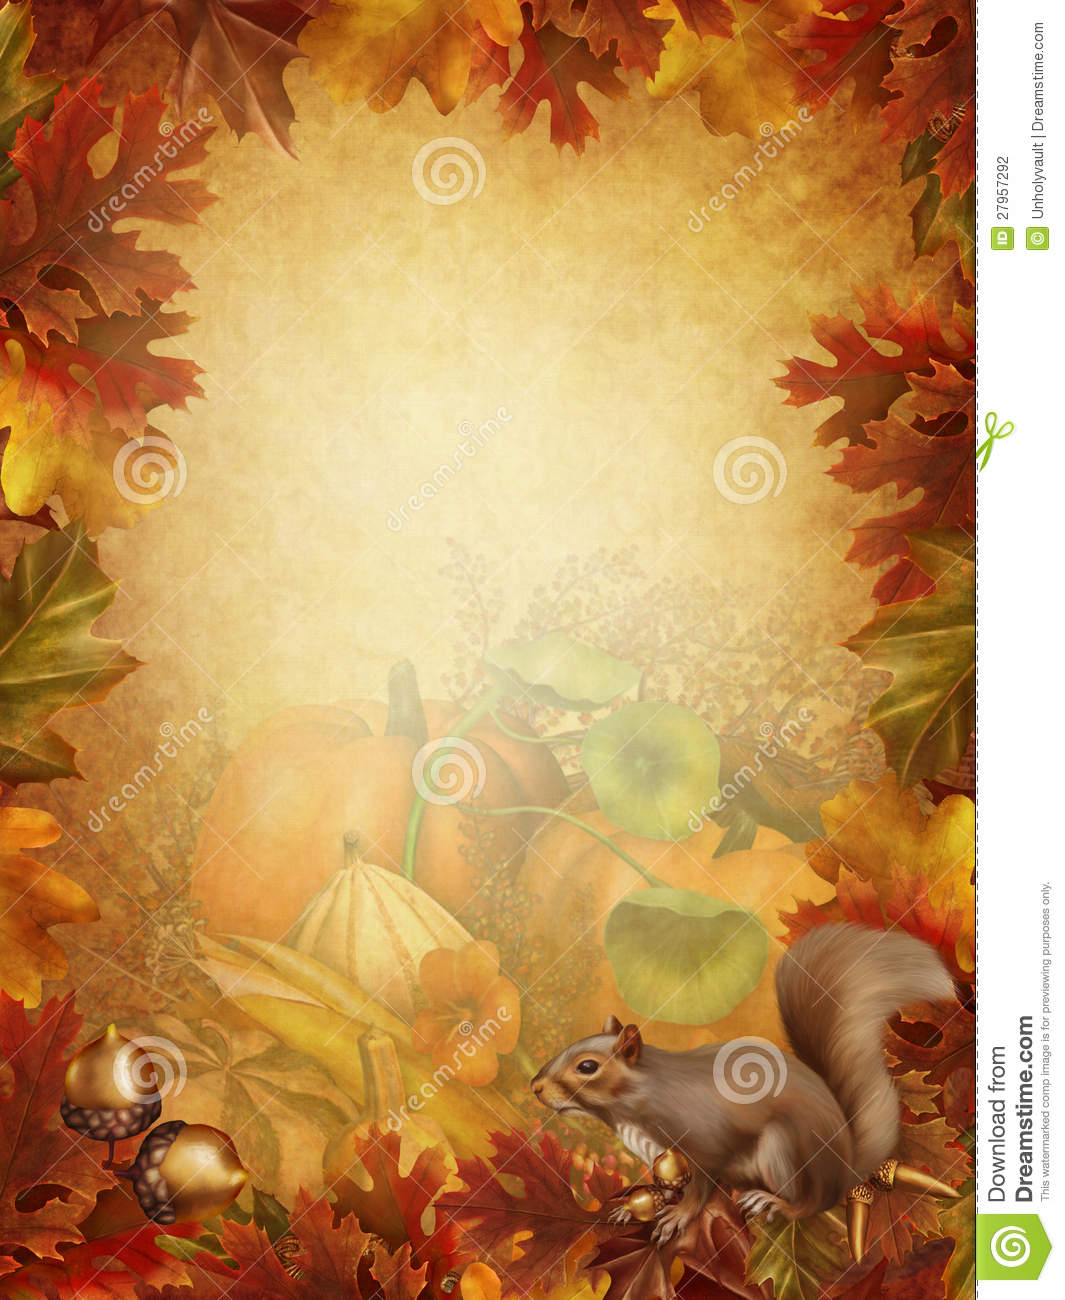 Fall Harvest Wallpaper Christian Autumn Background With A Squirrel Stock Photography